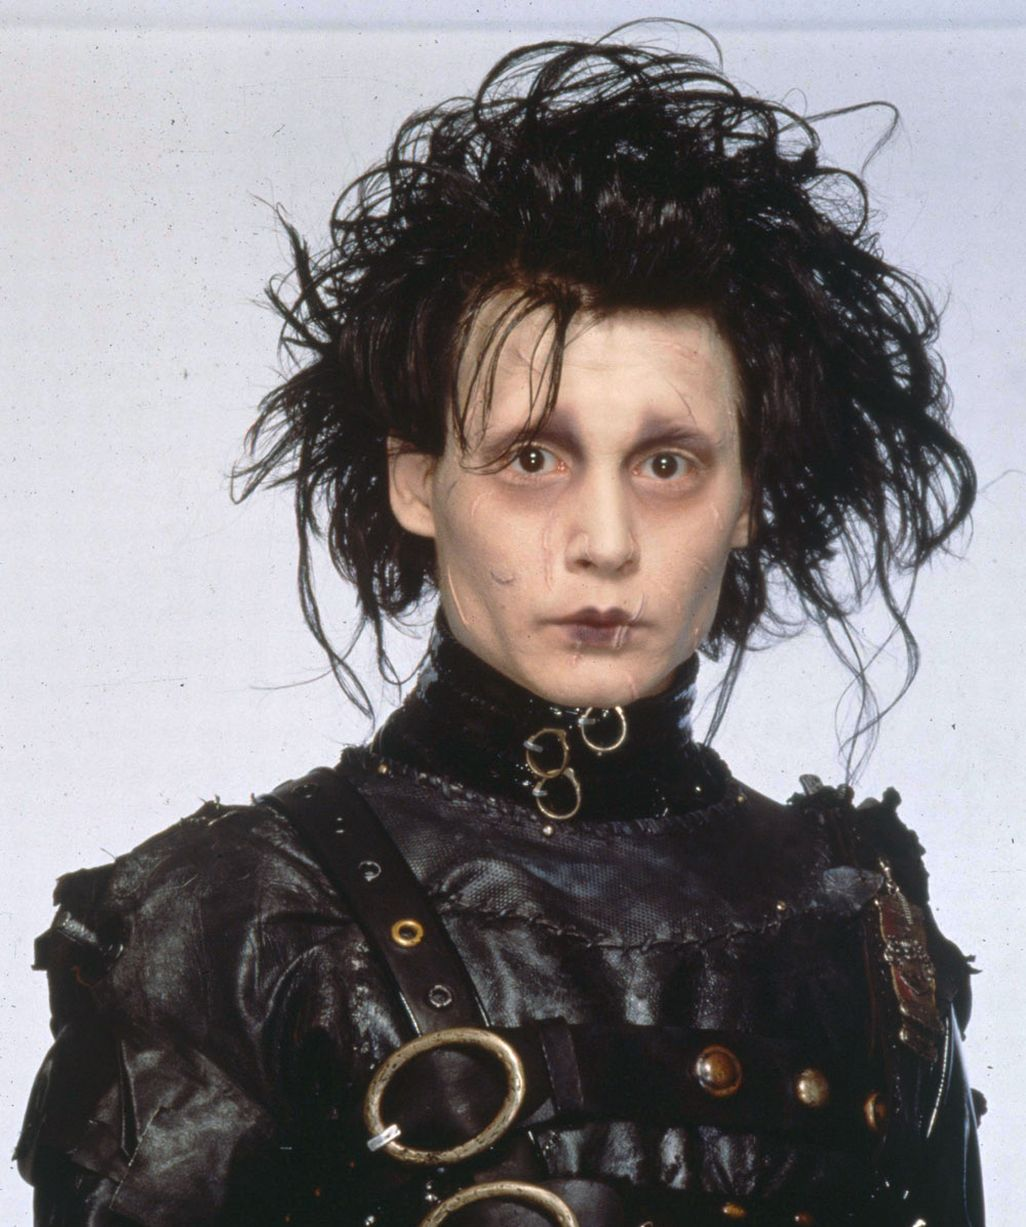 Johnny-Depp-in-the-1990-film-Edward-Scissorhands